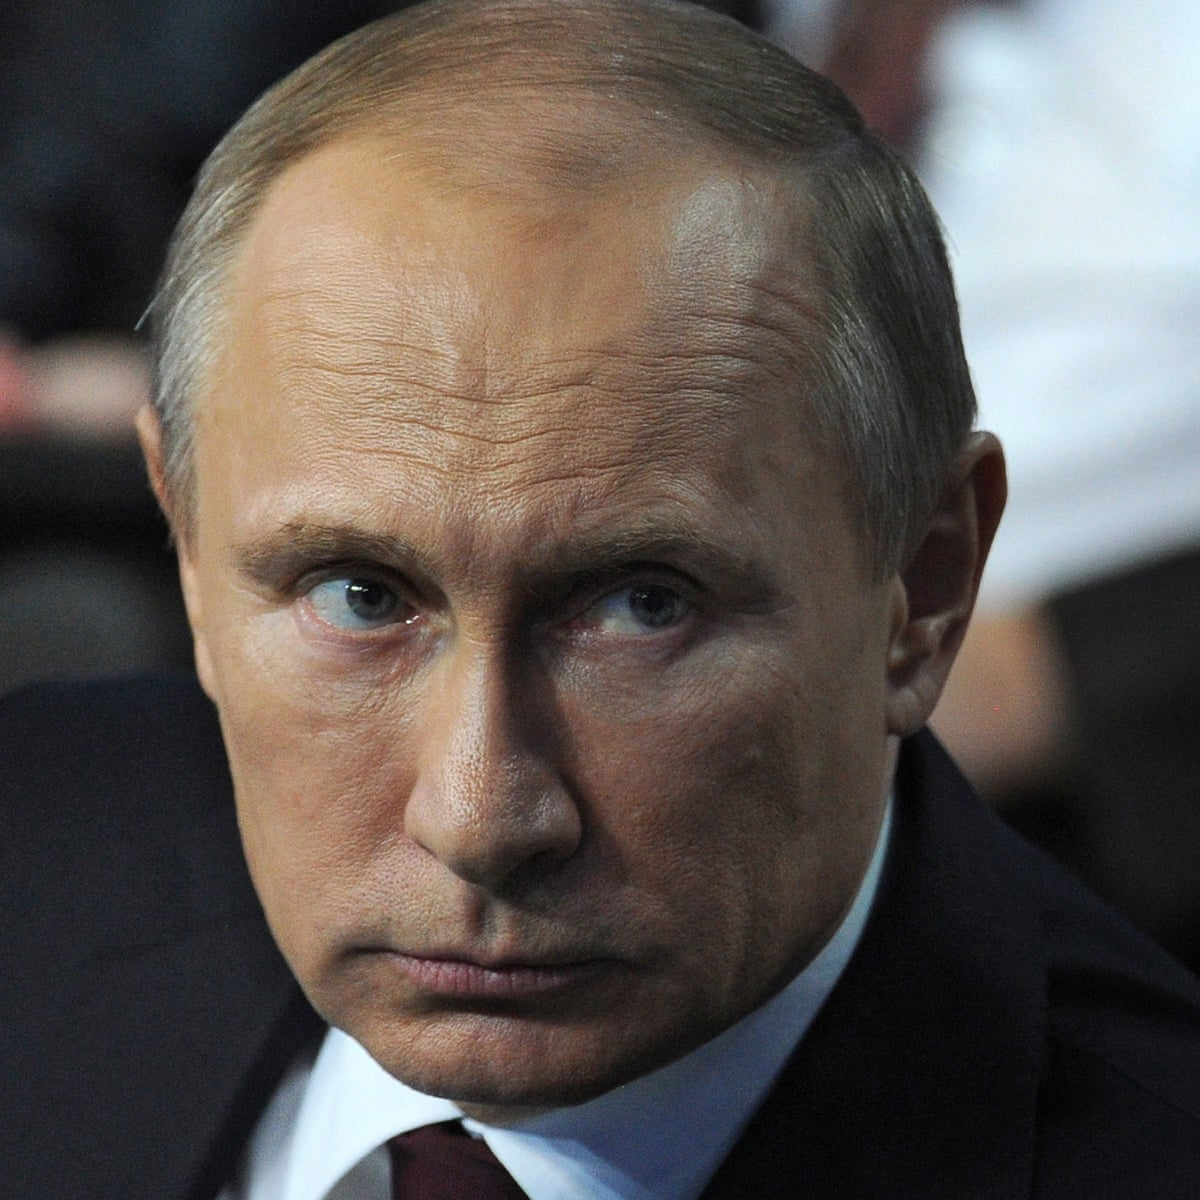 Women Have Bad Days Vladimir Putin But It S Not Because Of Our Cycles Vladimir Putin The Guardian